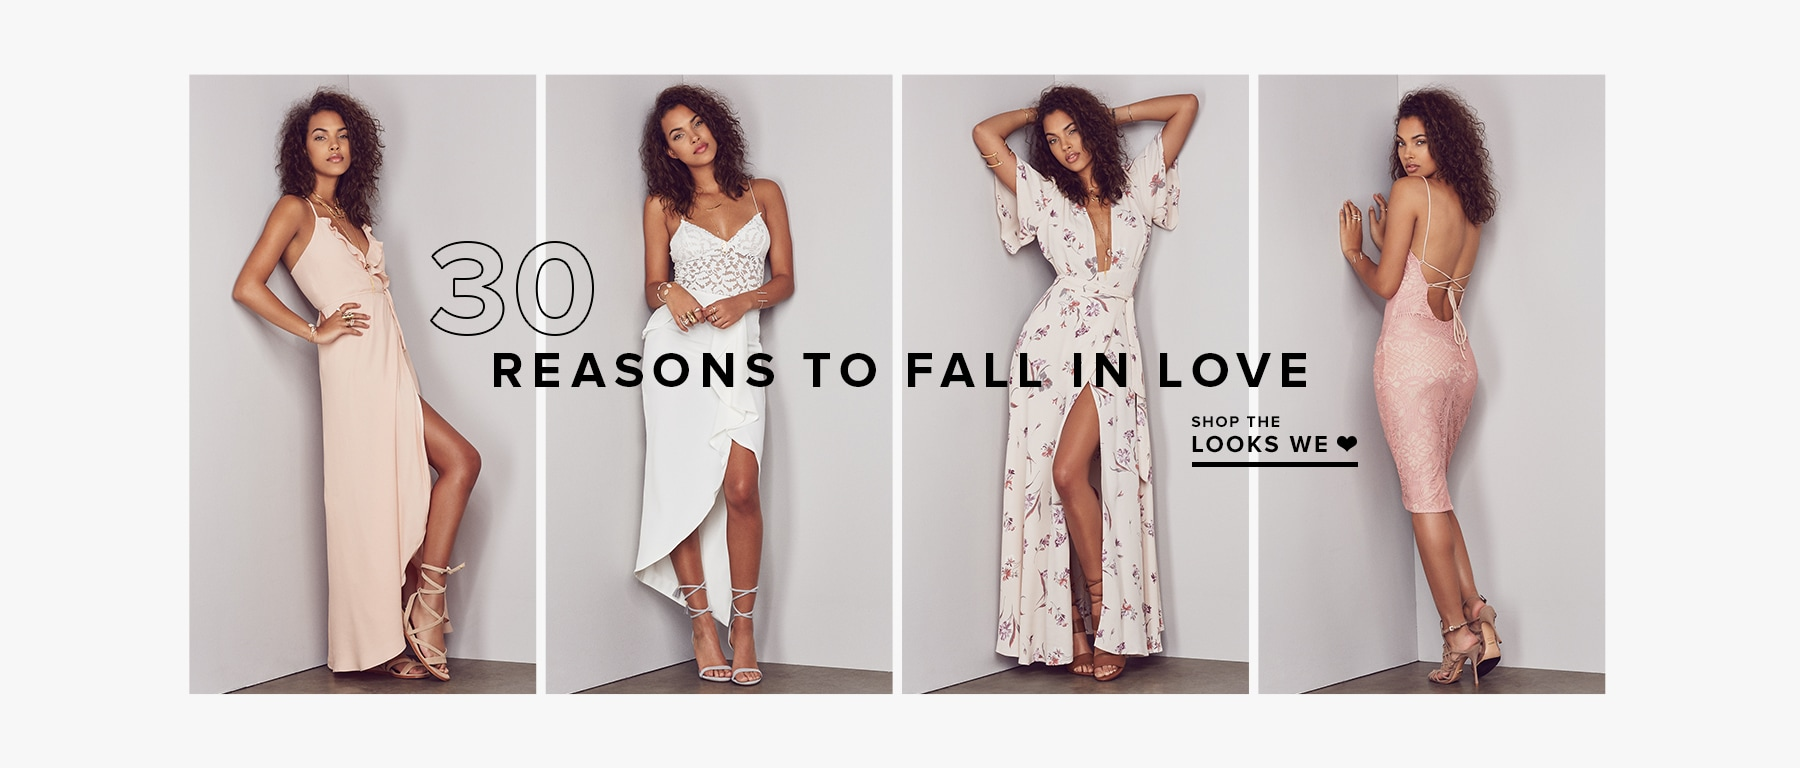 30 REASONS TO FALL IN LOVE